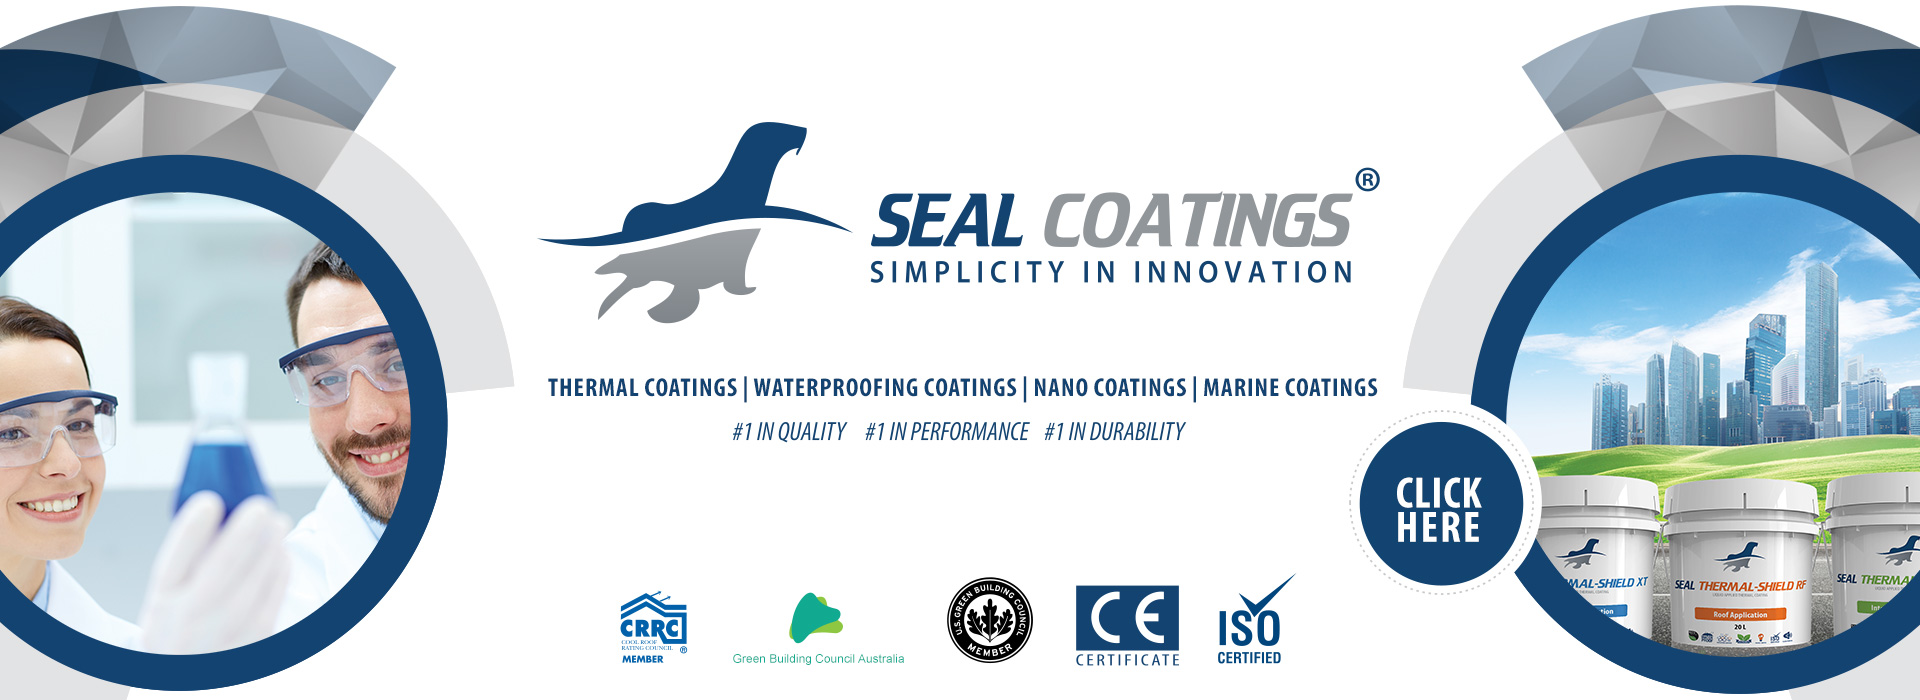 seal coatings - thermal insulation reflective waterproofing paint coatings roof walls UAE Dubai